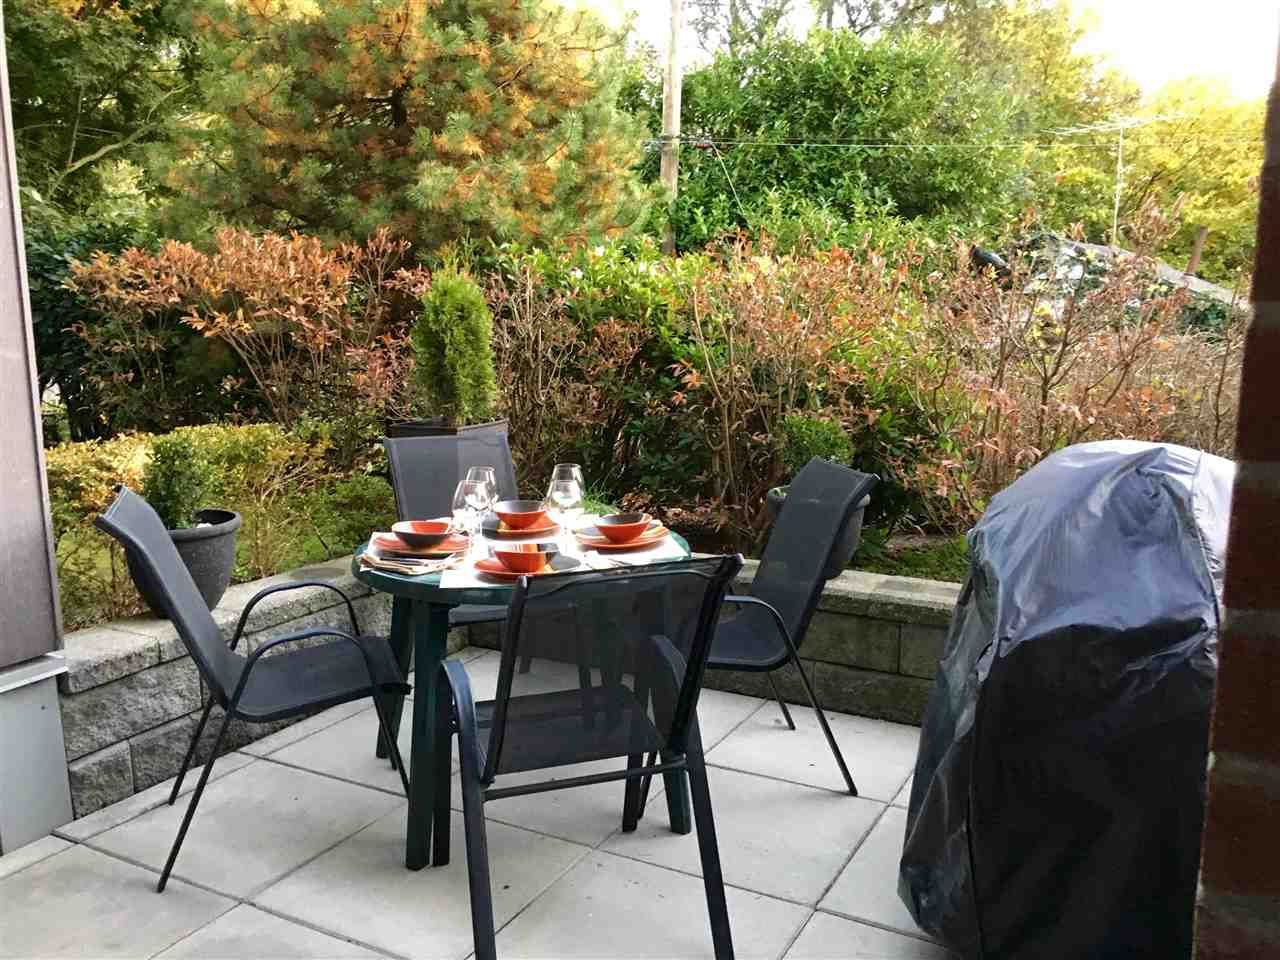 Photo 14: Photos: 106 2488 KELLY Avenue in Port Coquitlam: Central Pt Coquitlam Condo for sale : MLS®# R2216914